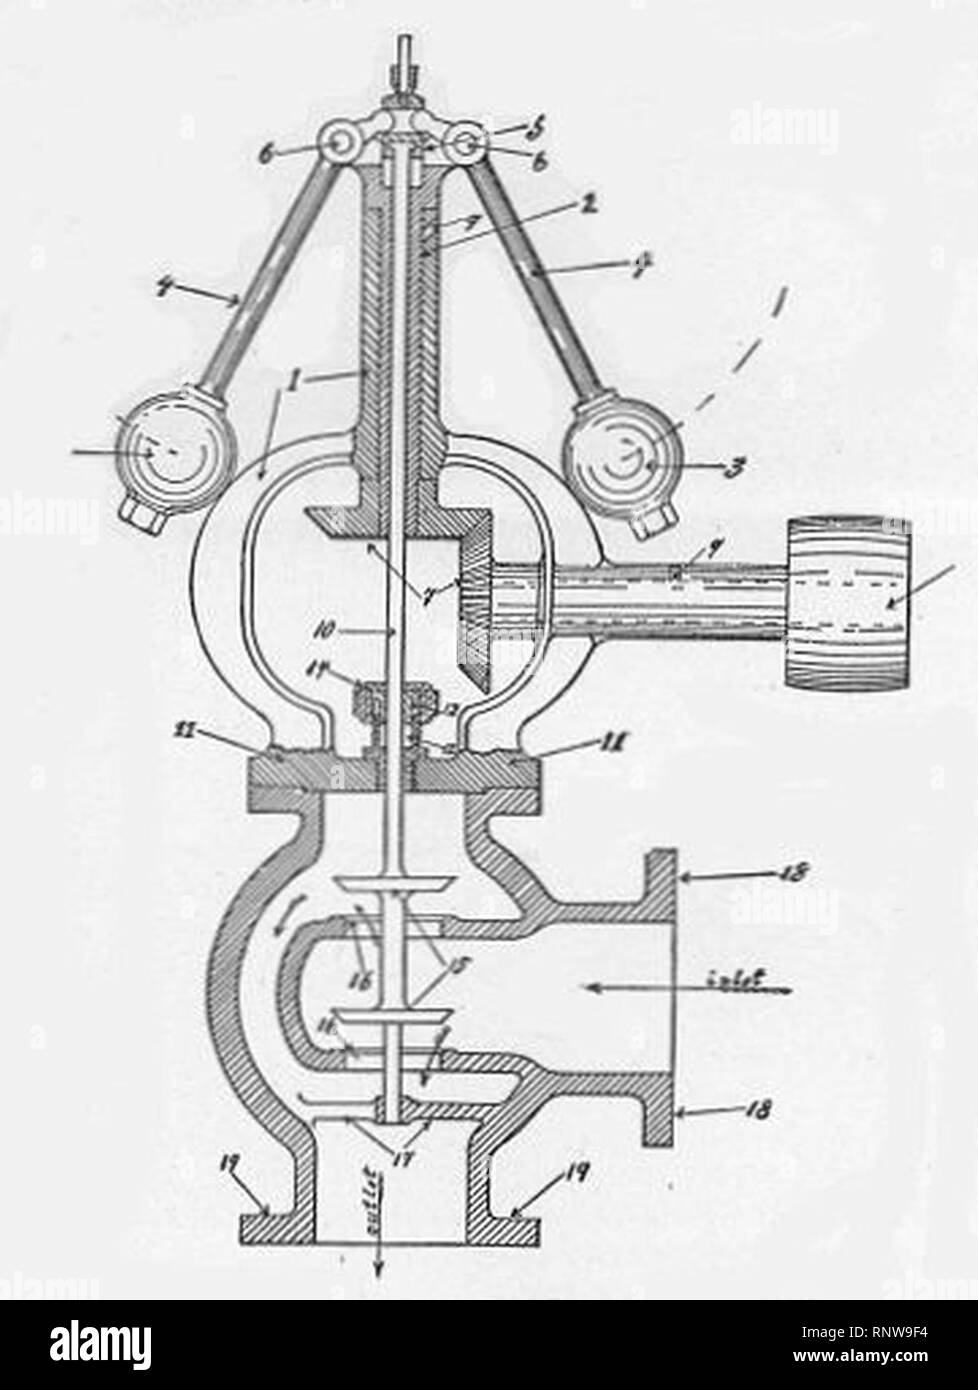 Centrifugal governor and balanced steam valve (New Catechism of the Steam Engine, 1904). - Stock Image